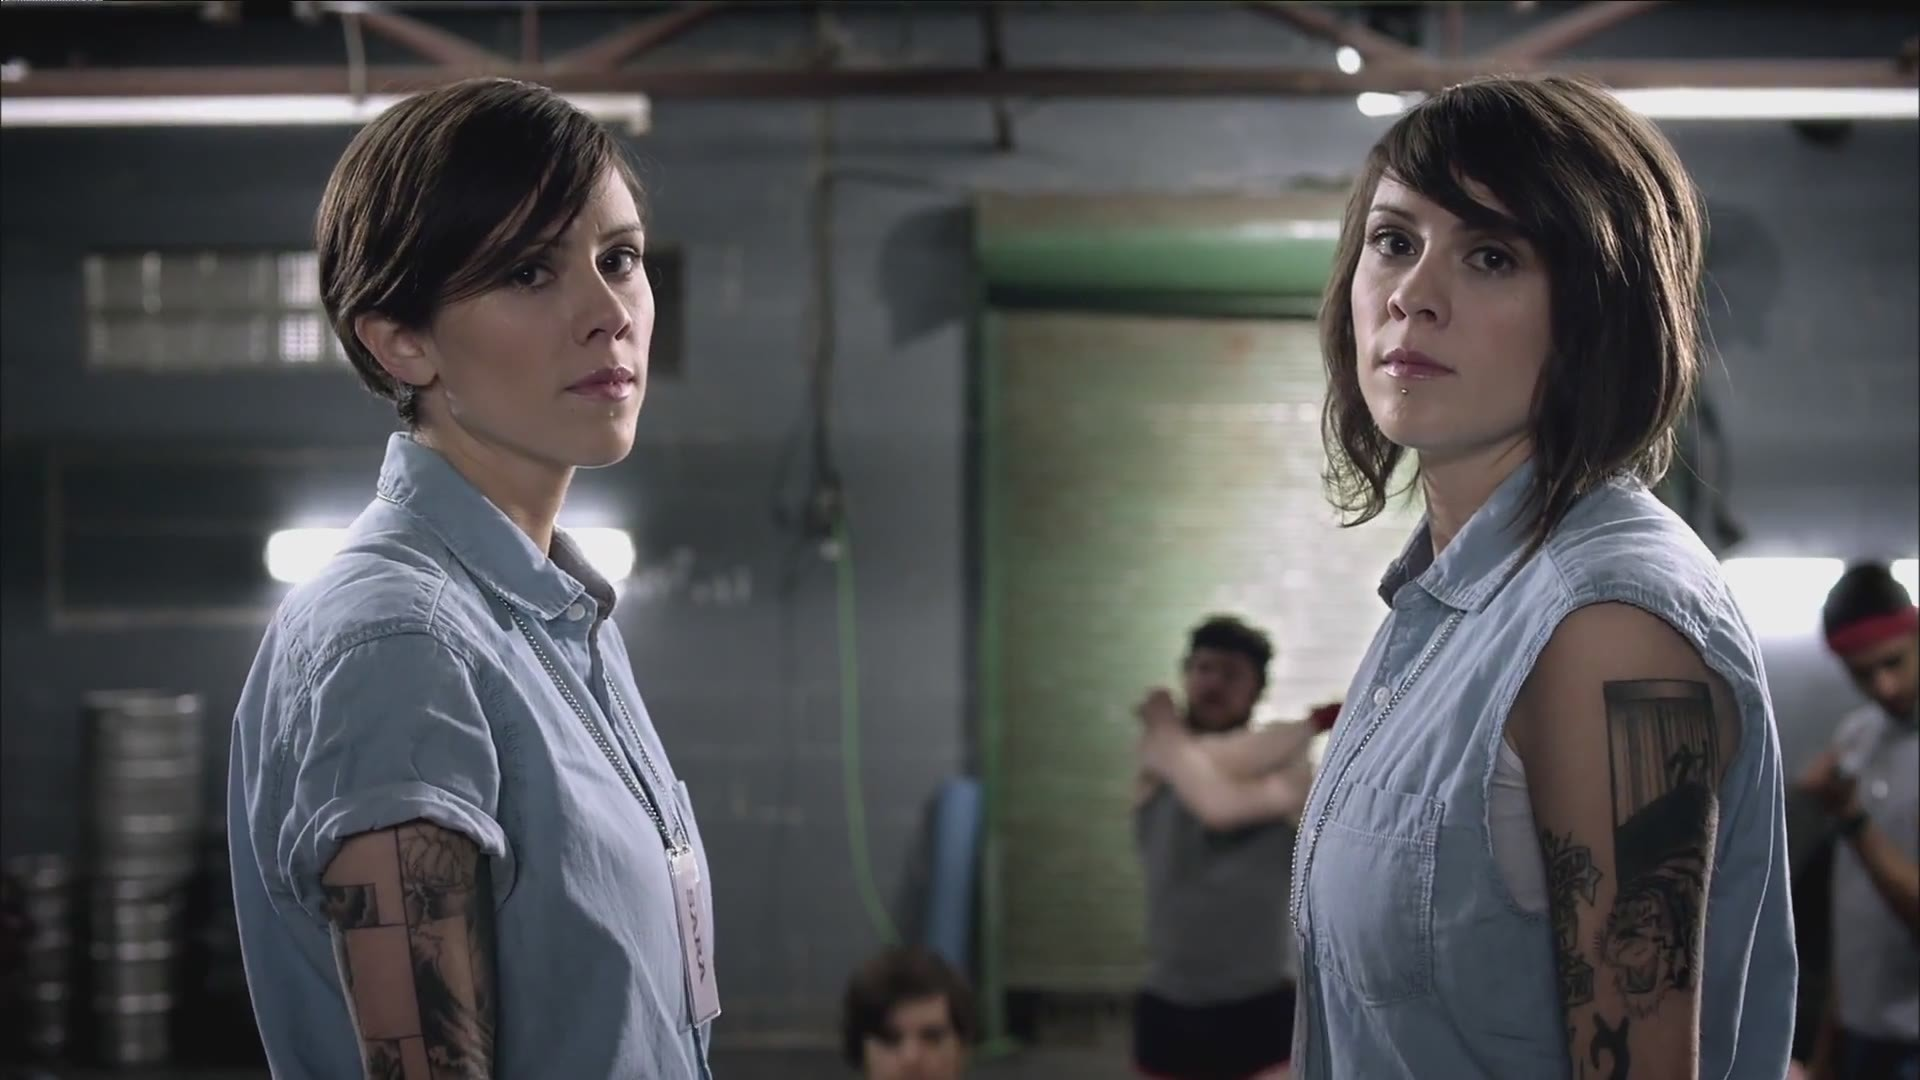 1920x1080 tegan and sara free for desktop